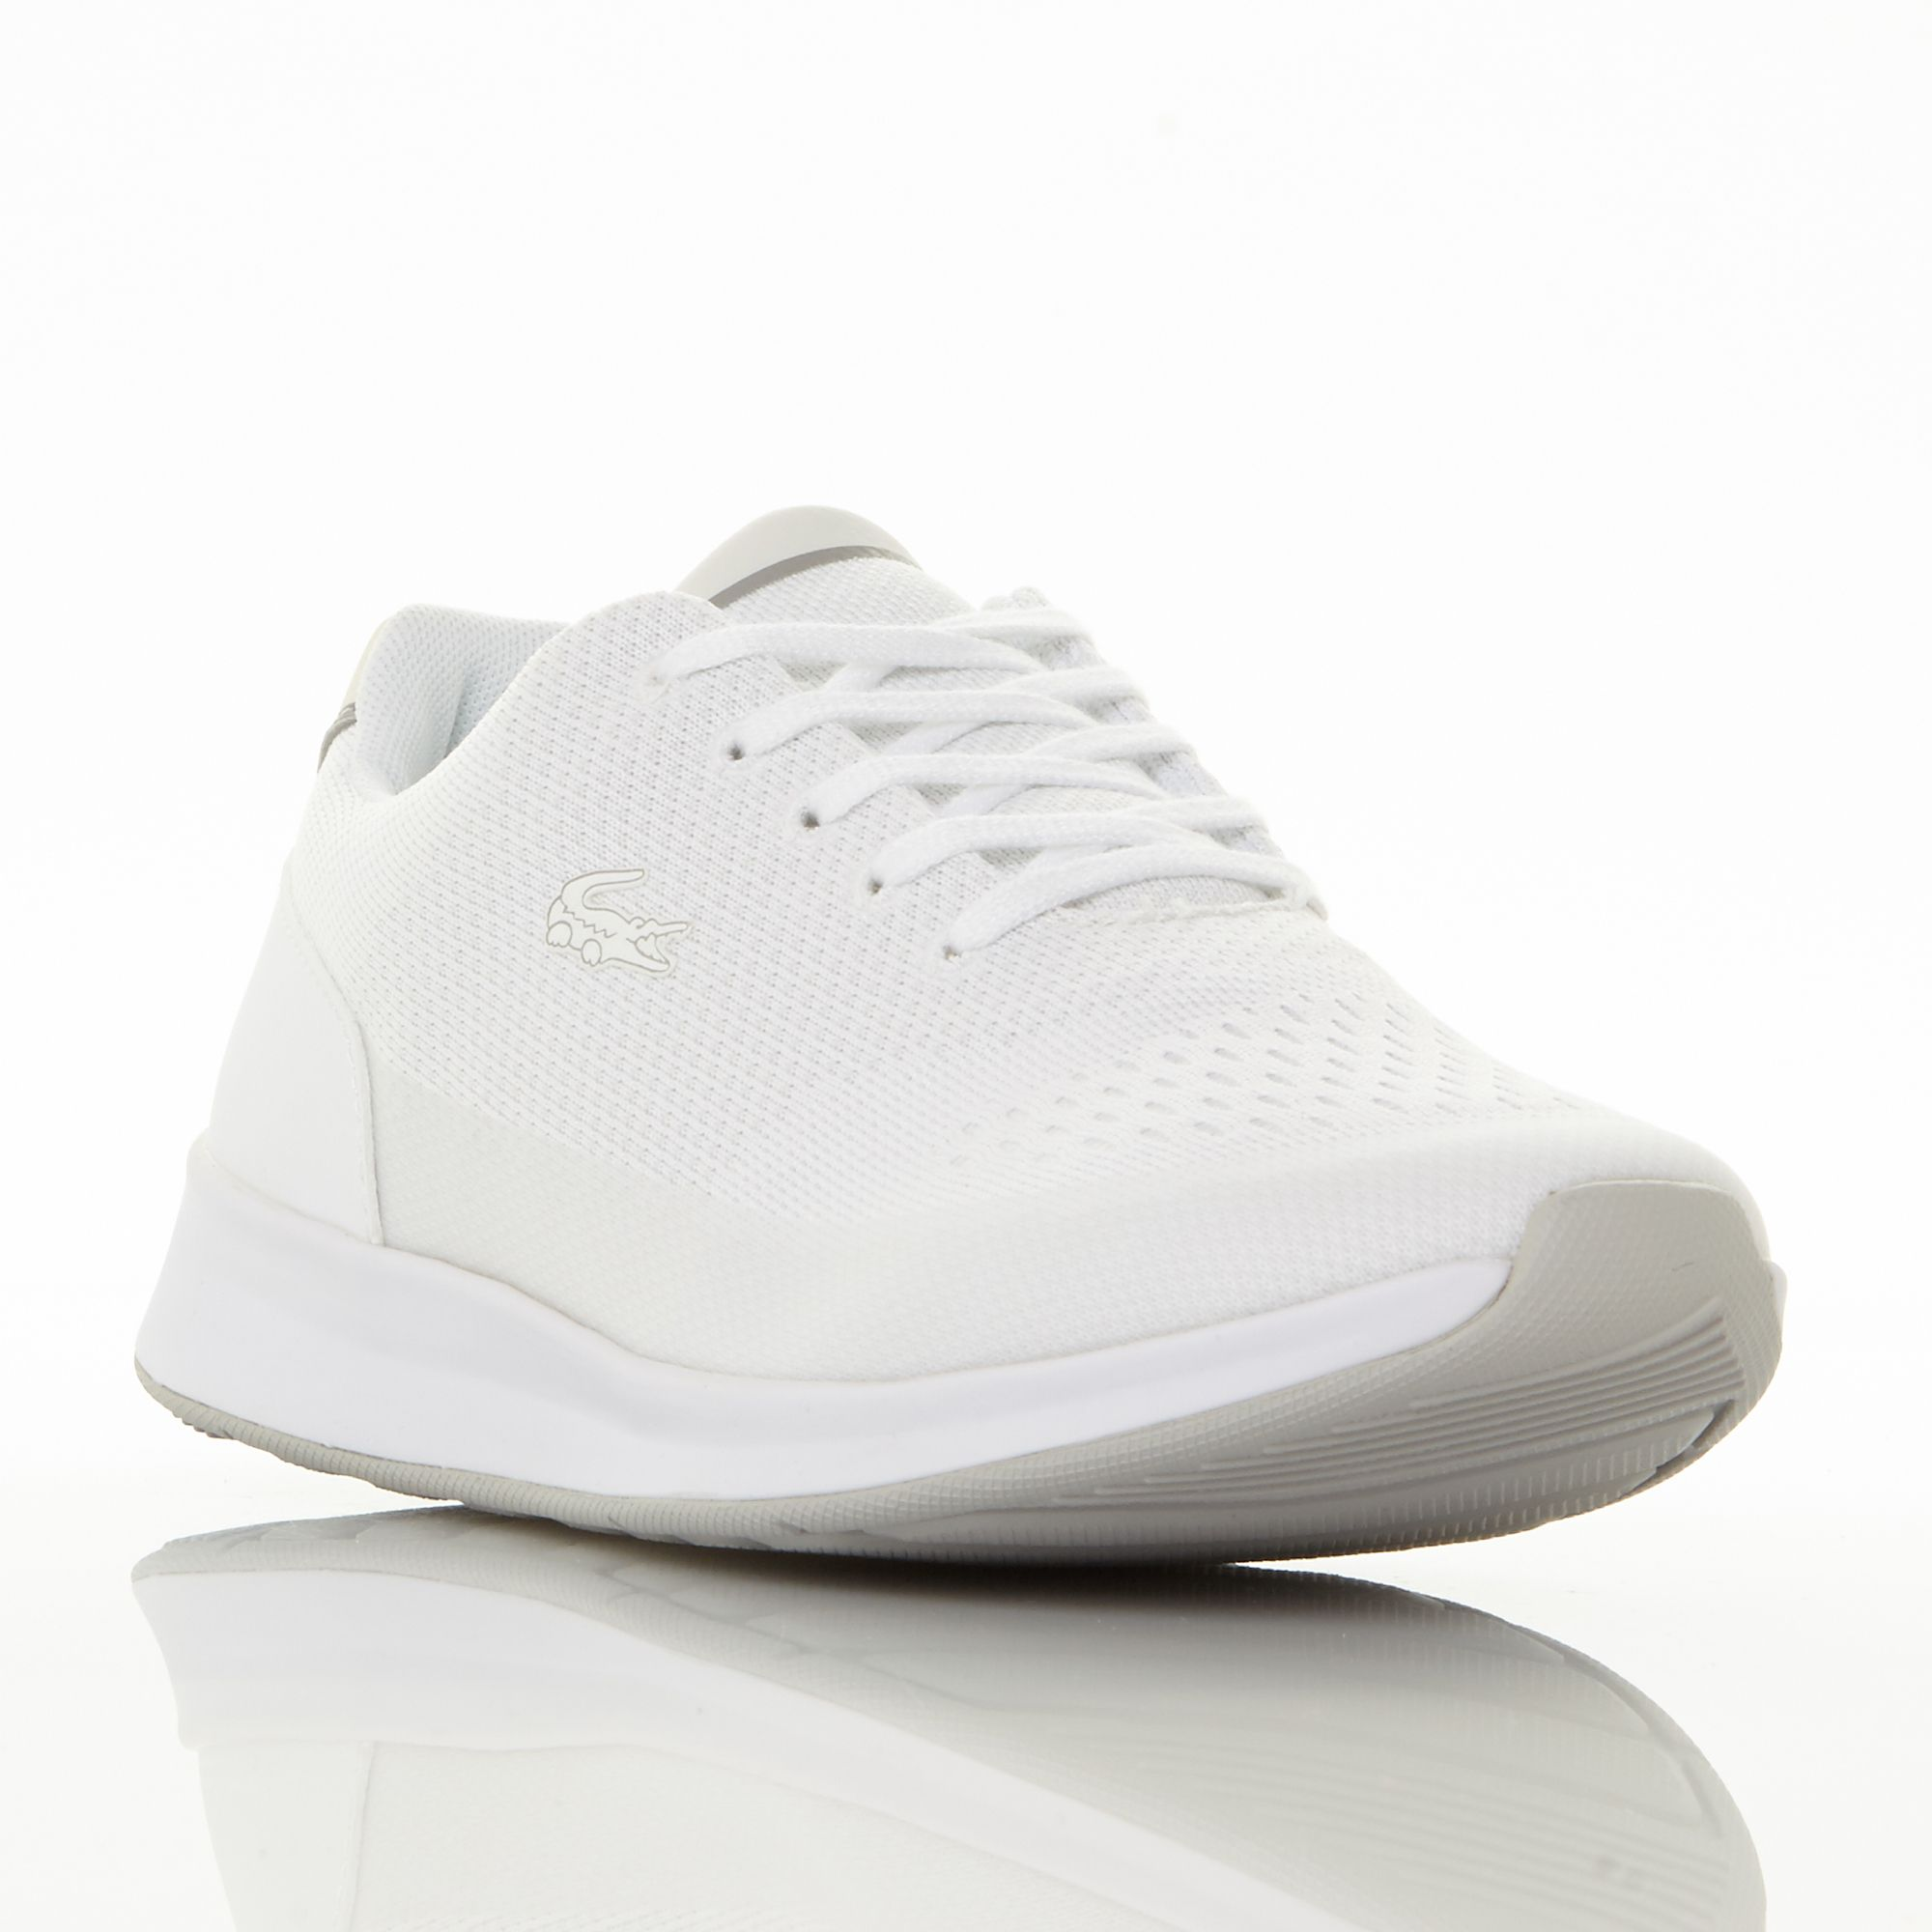 Lacoste Chaumont Knitted Runner Trainers, White